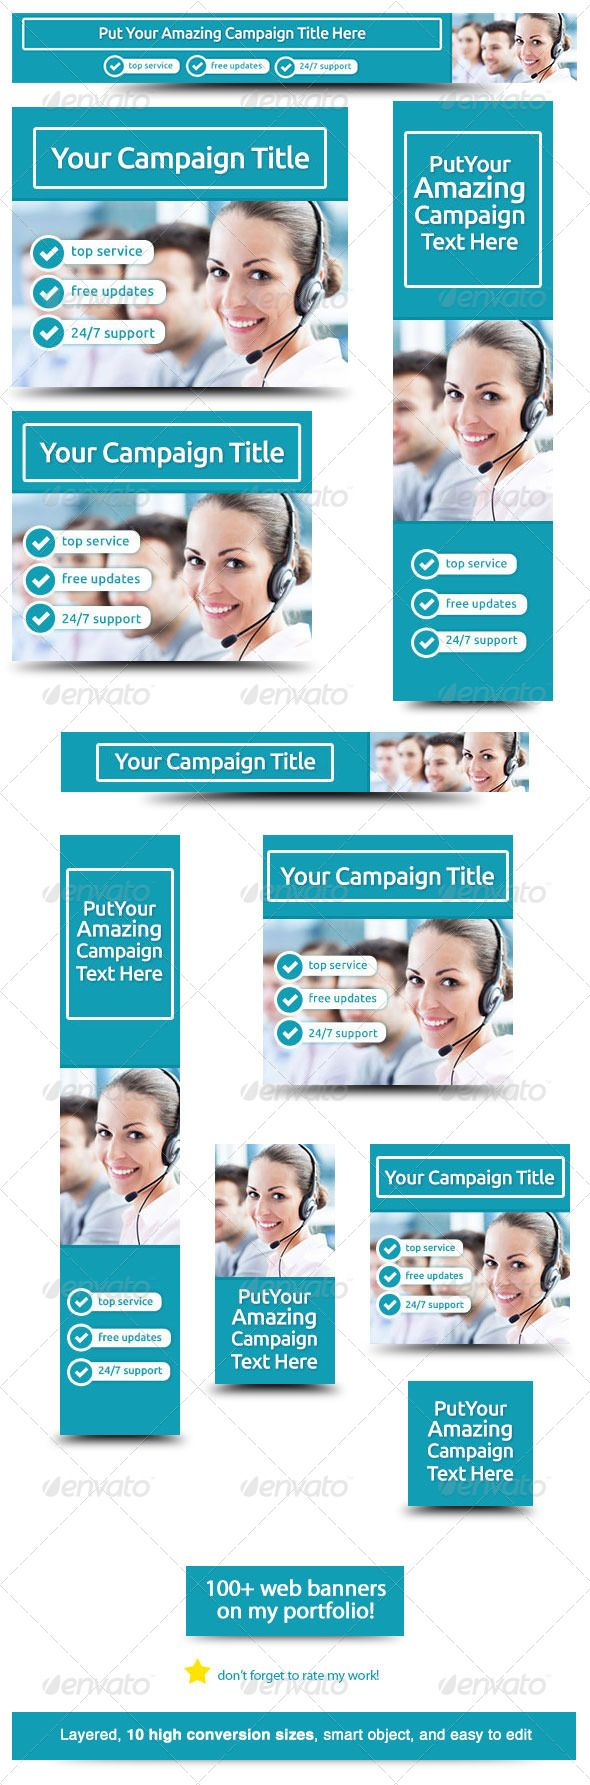 Design google banner ads - Corporate Web Banner Design Template 30